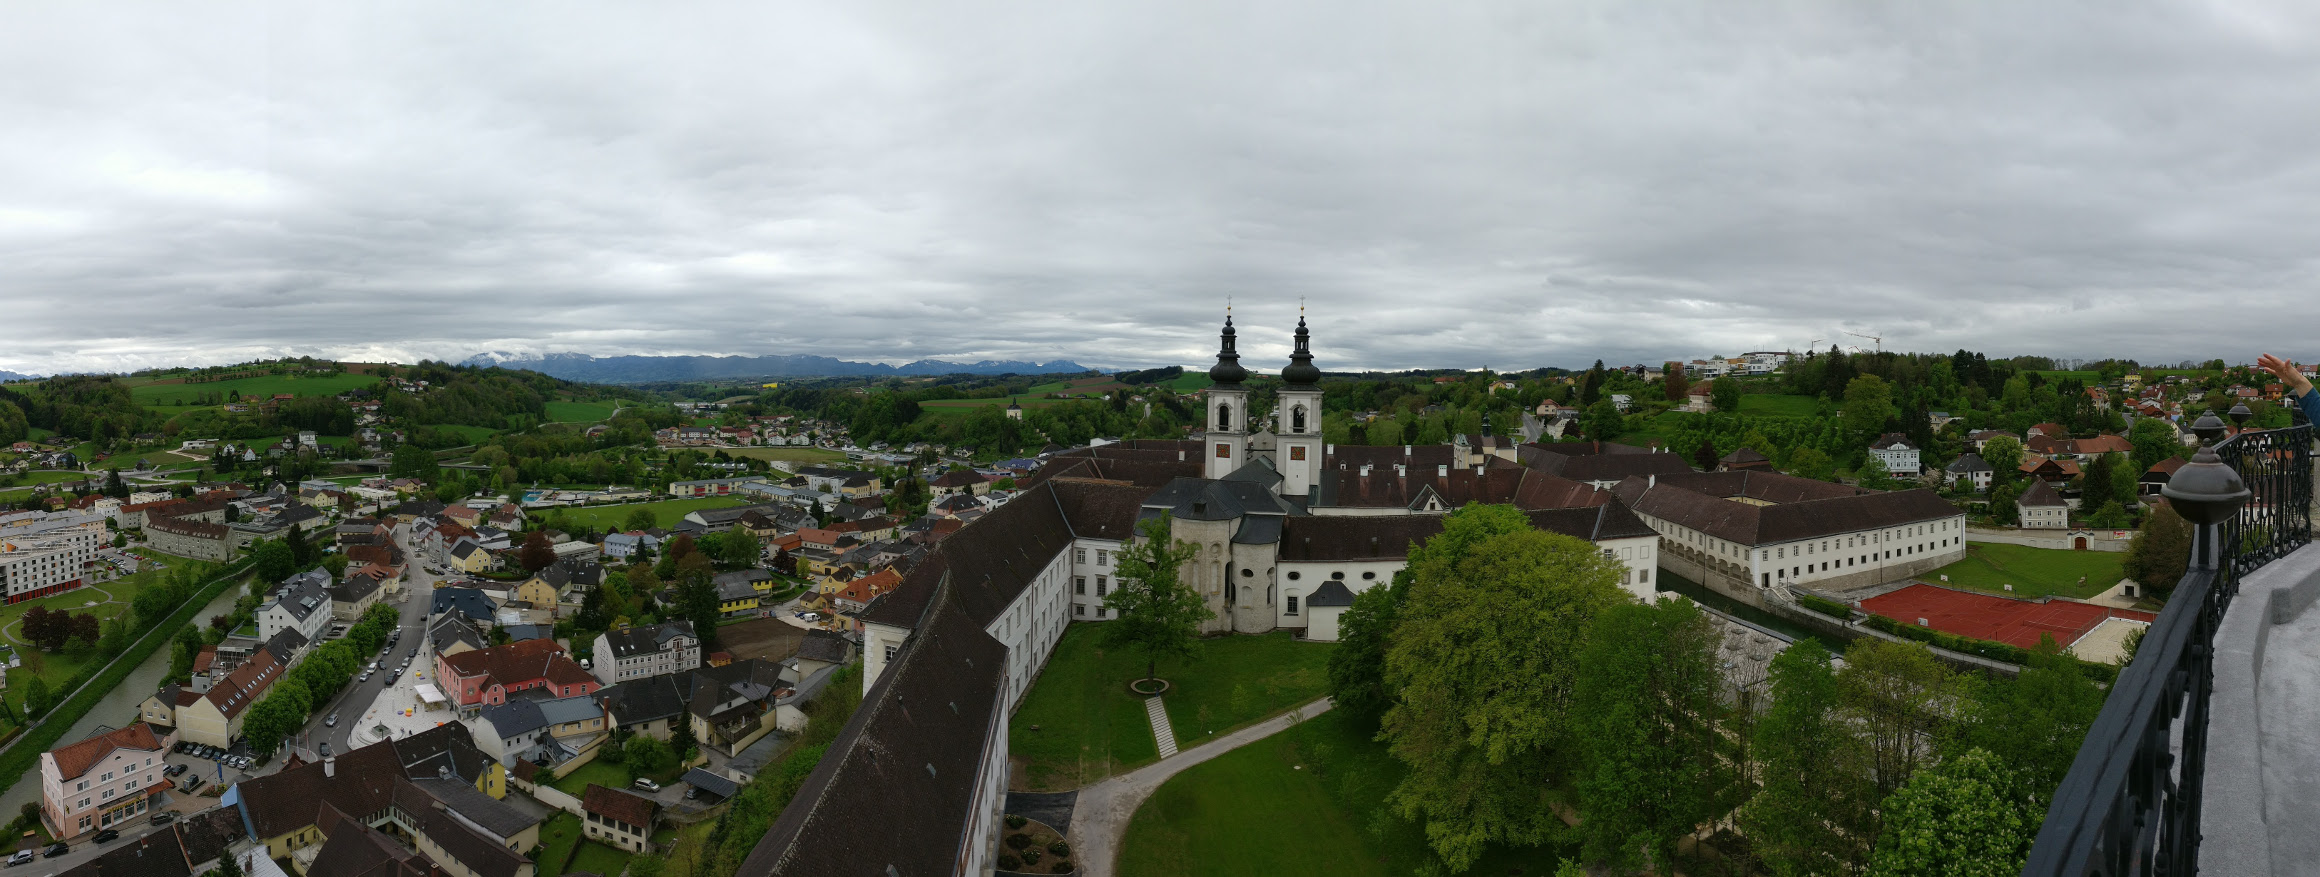 Views from the Mathemical Tower terrace in Kremsmünster Abbey